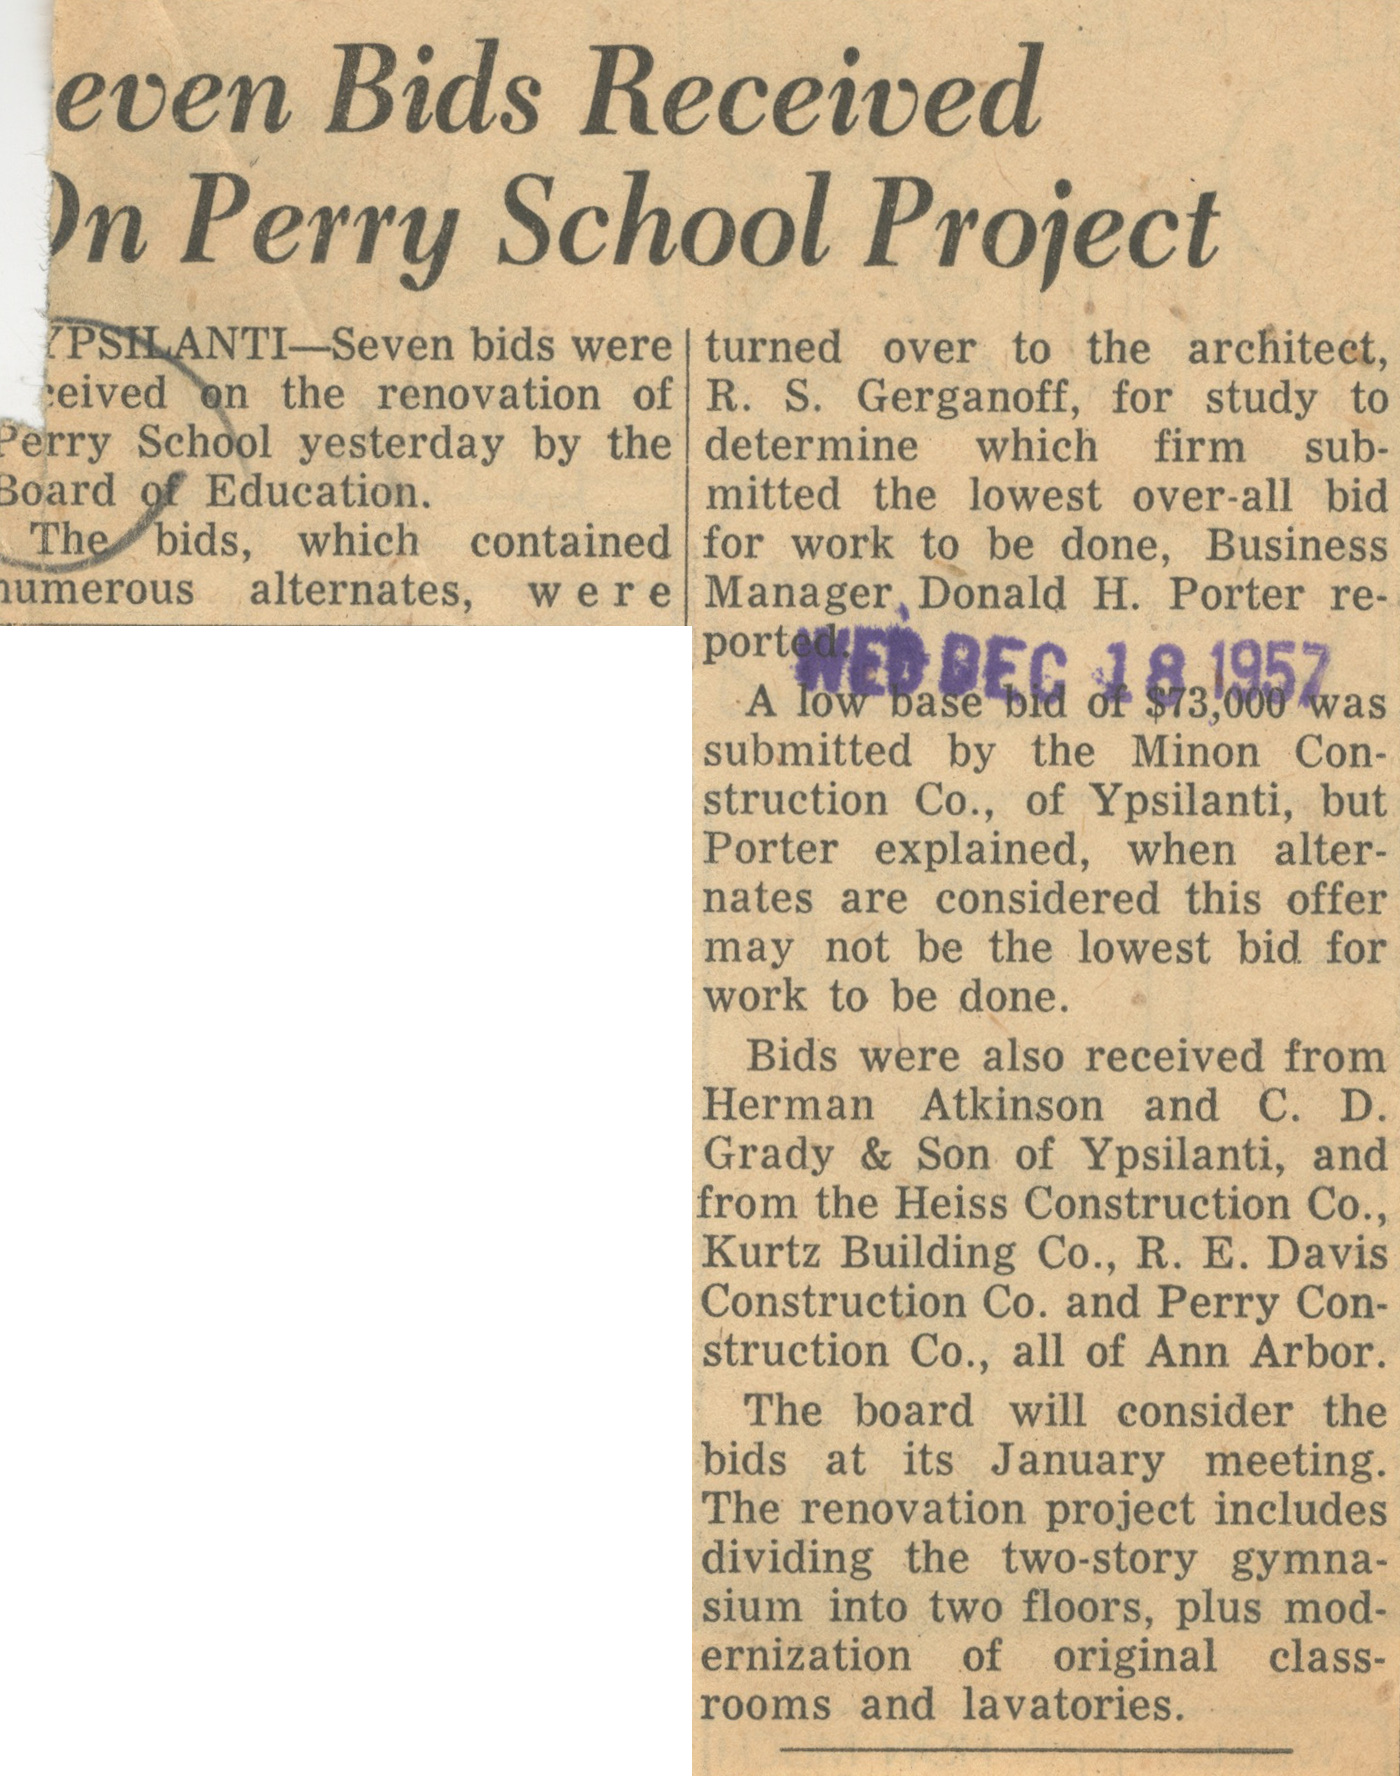 Seven Bids Received On Perry School Project image